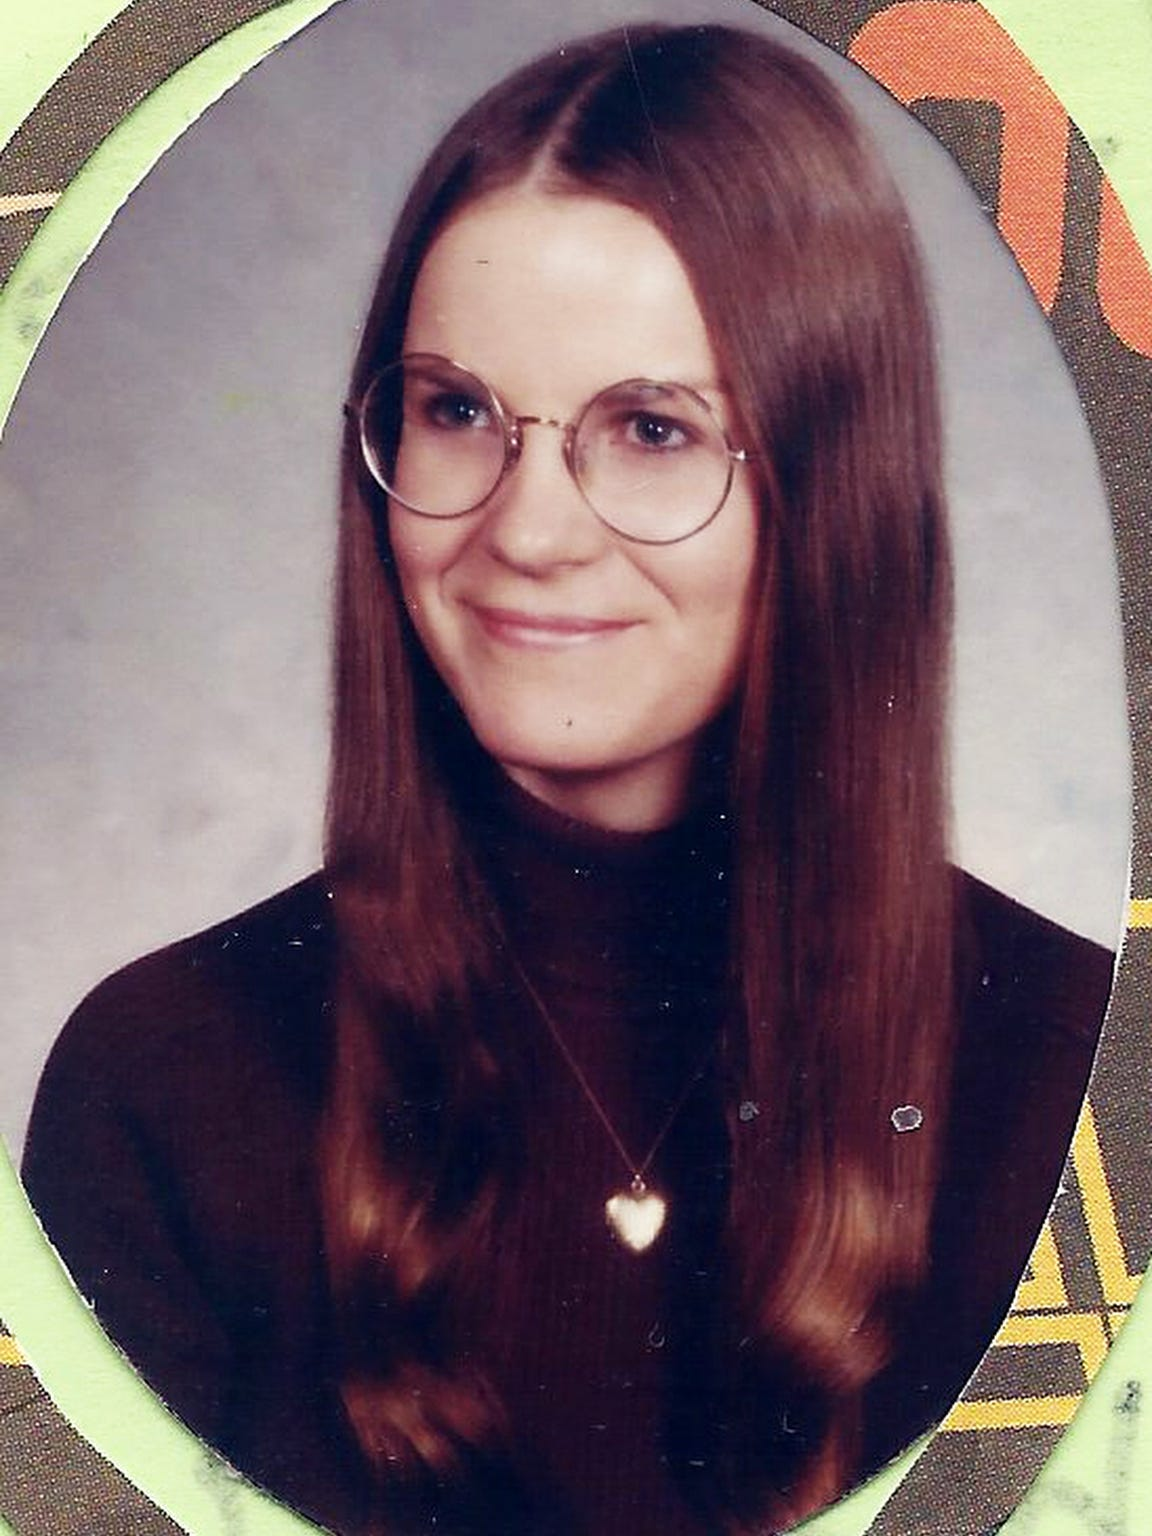 A family photo of Sherri Myers from the 1970s. Myers